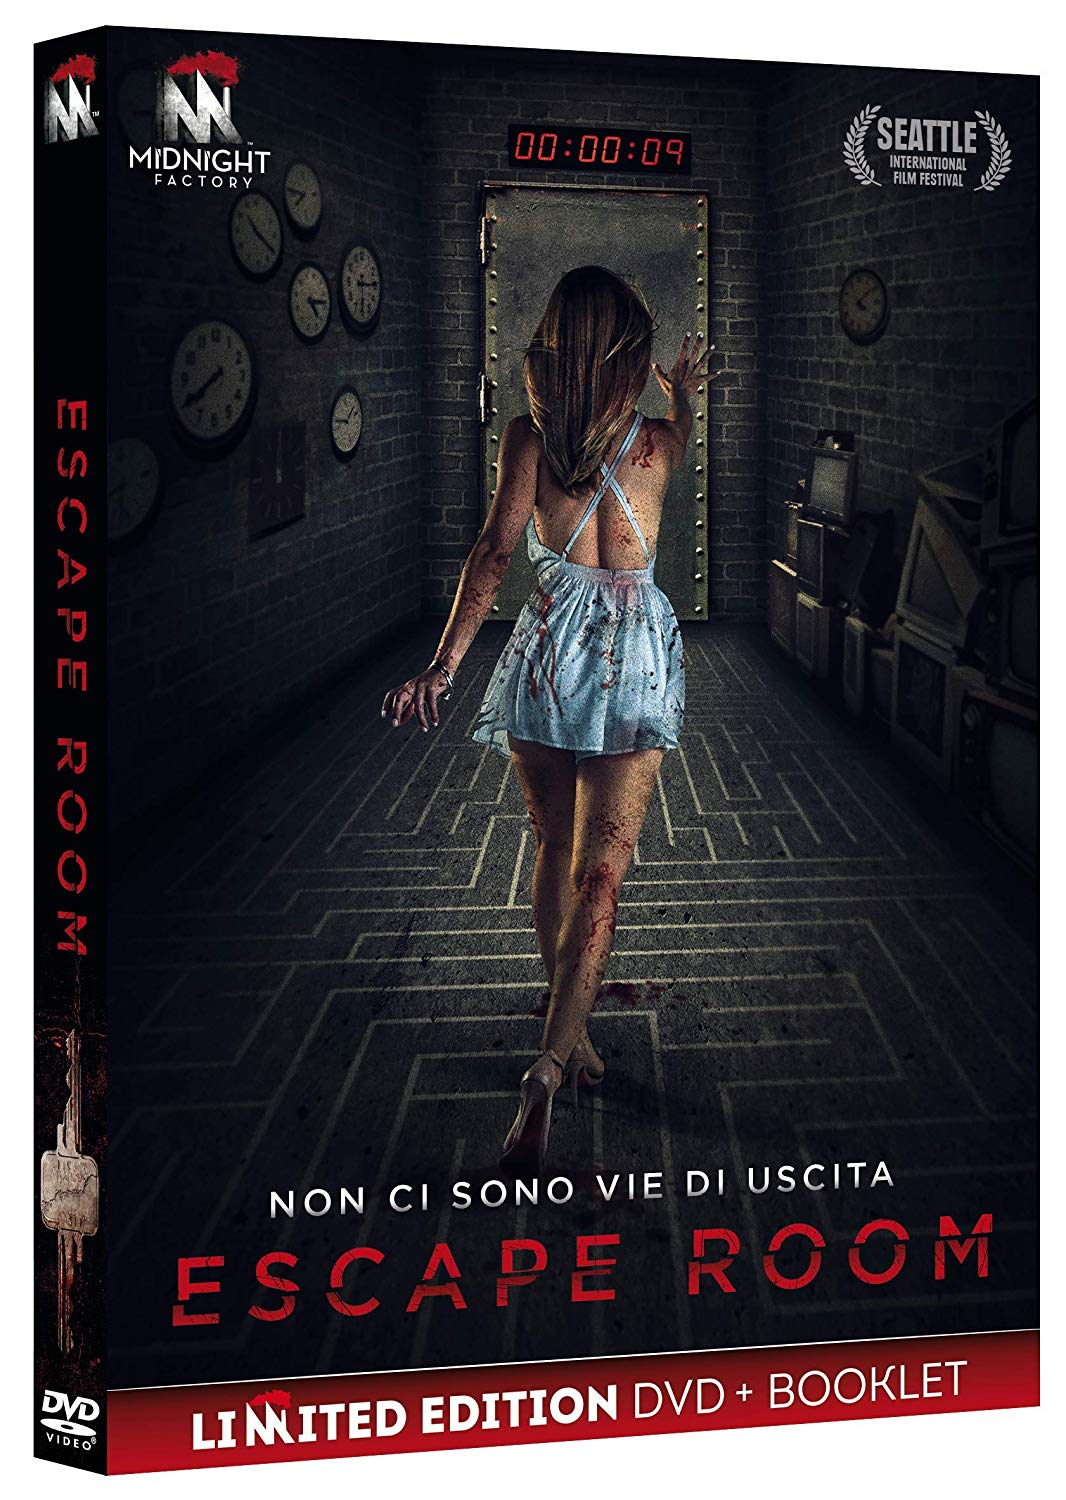 ESCAPE ROOM (EDIZIONE LIMITATA) (DVD+BOOKLET) (DVD)